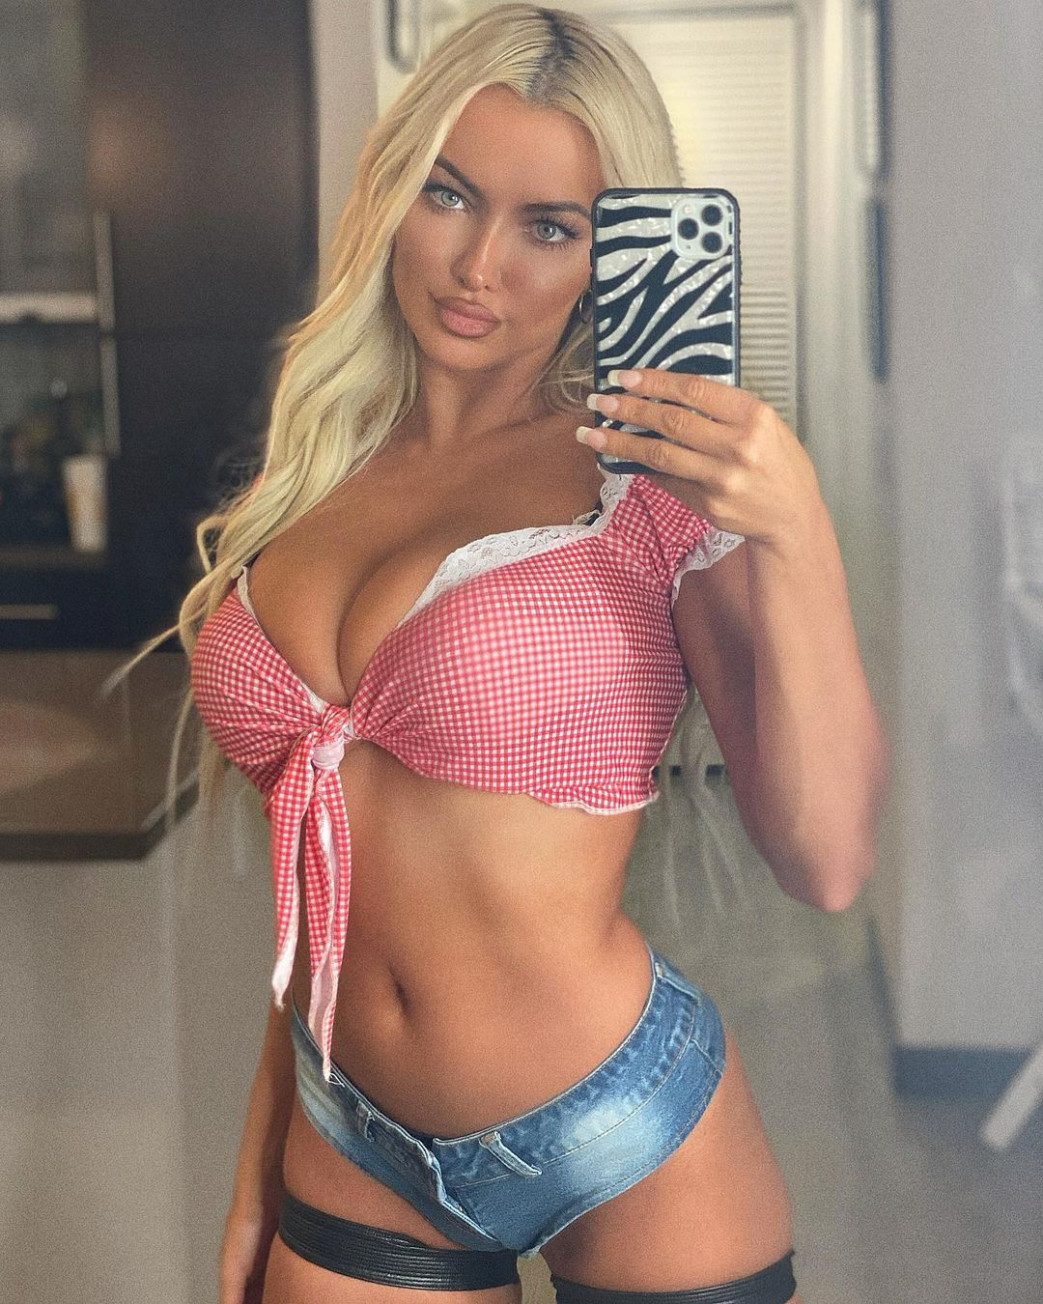 Lindsey-Pelas-Cleavage-In-Pink-Braa-and-Daisy-Dukes-2.jpg